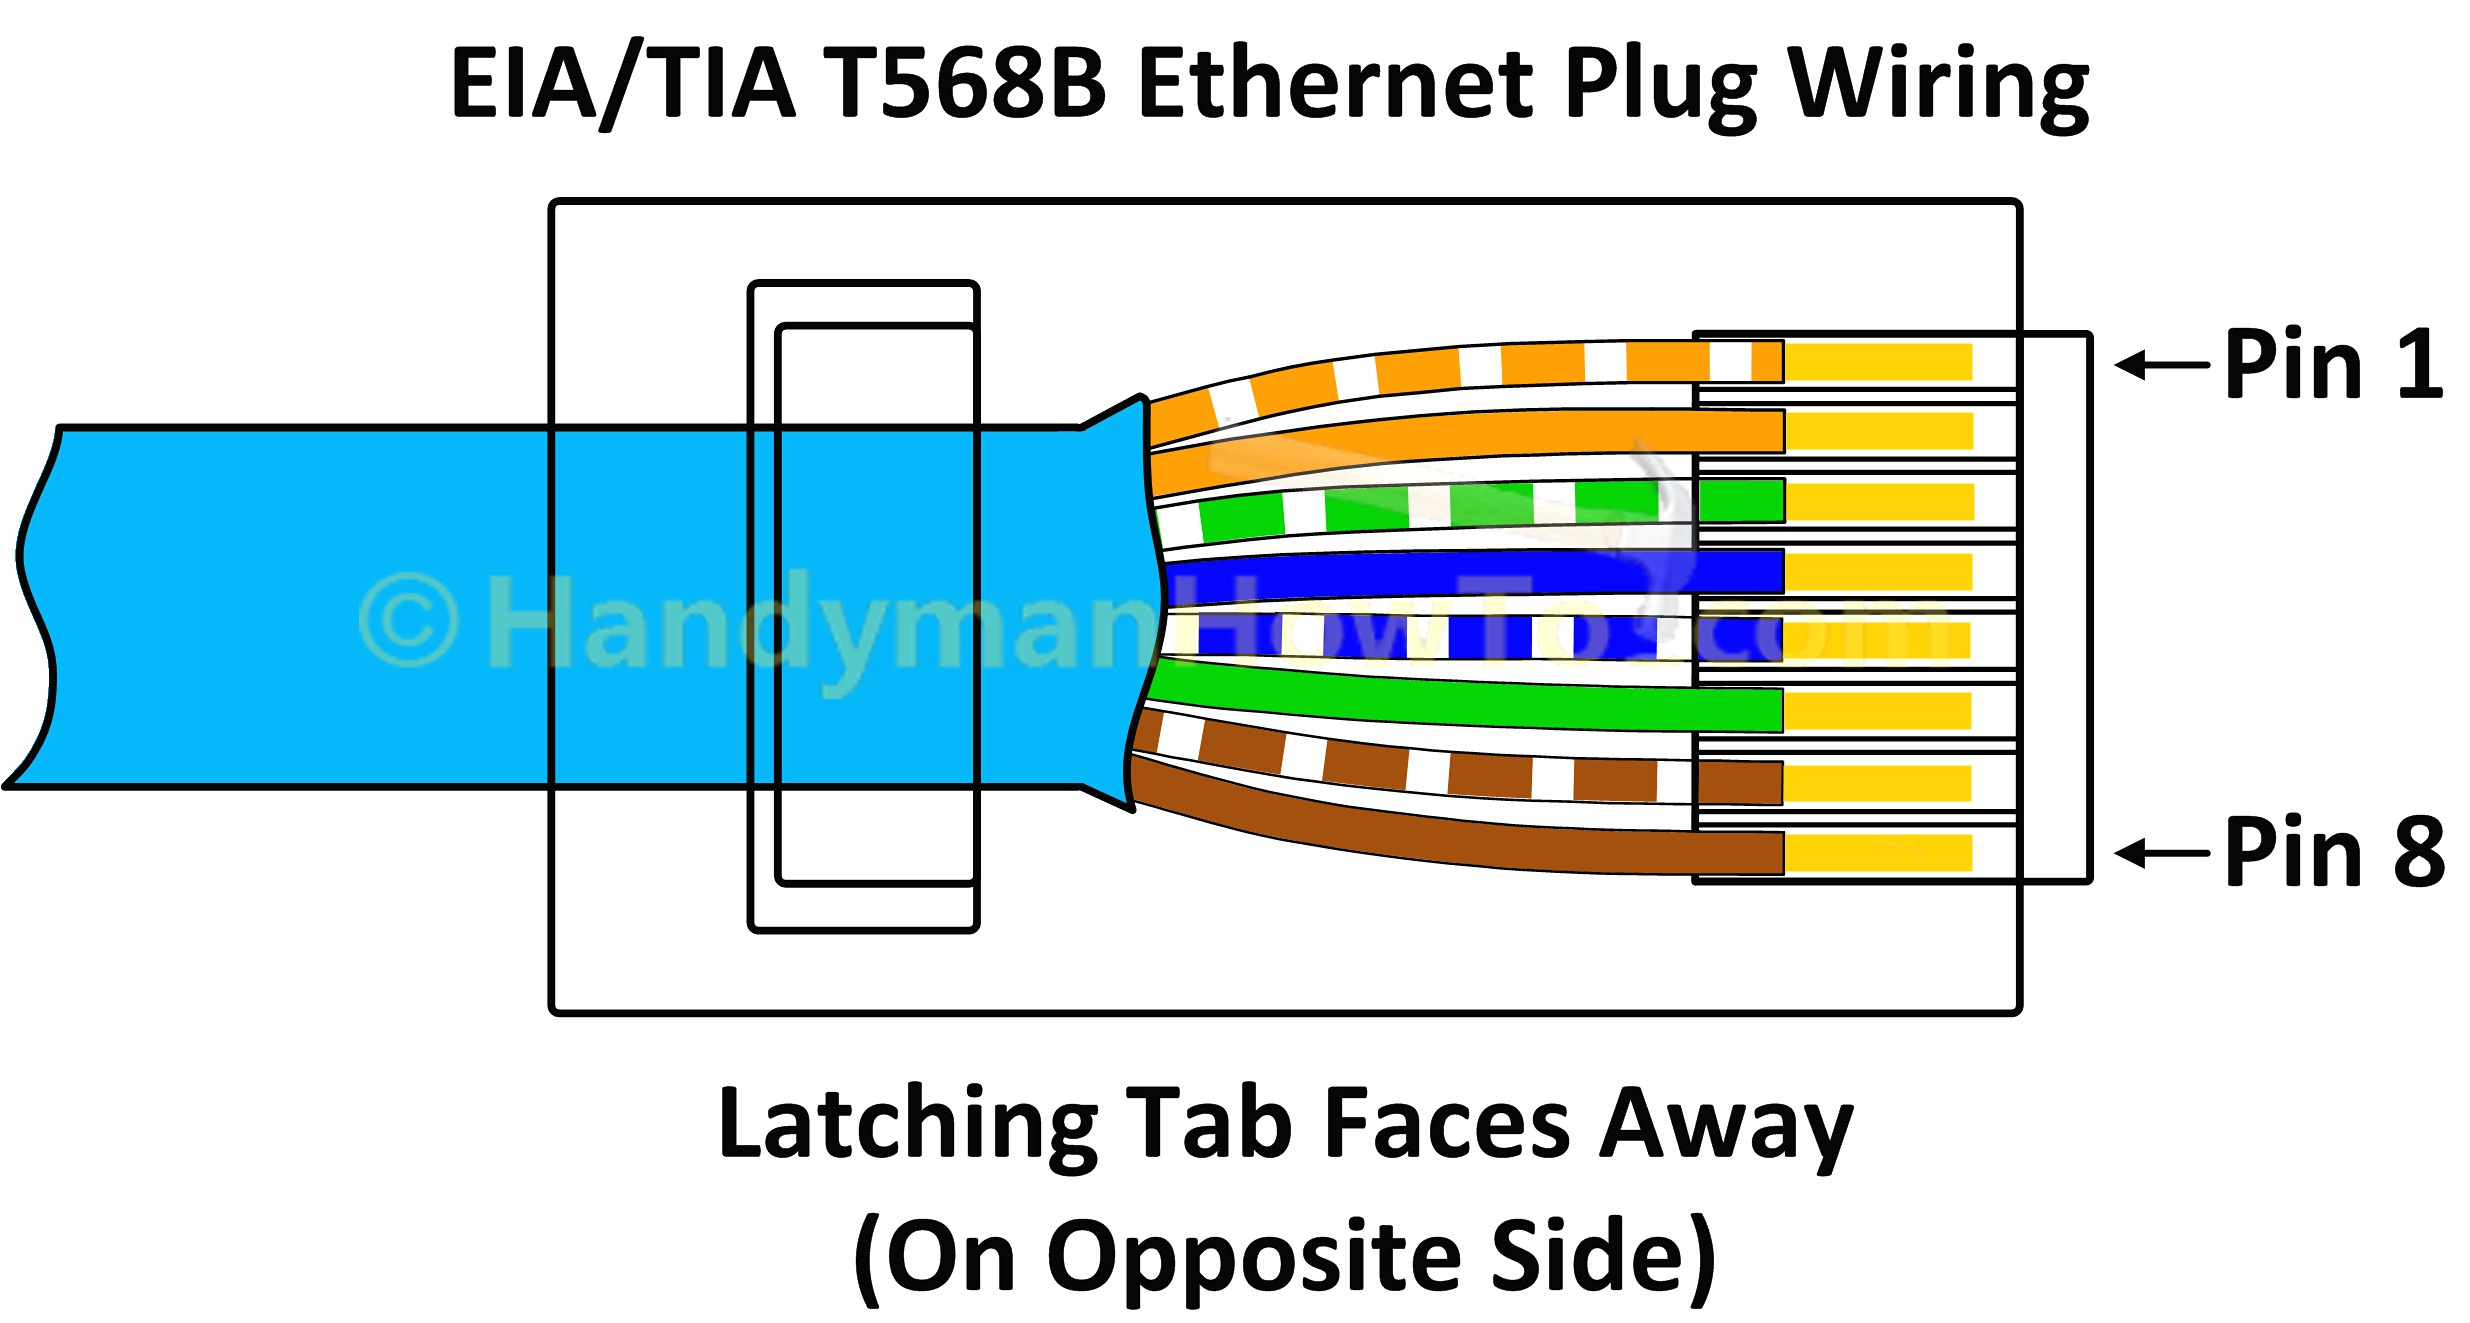 ethernet cable wiring diagram cat5e Download-Cat5e Wire Diagram In T568A T568B RJ45 Cat6 Ethernet Cable Wiring Throughout 15-h